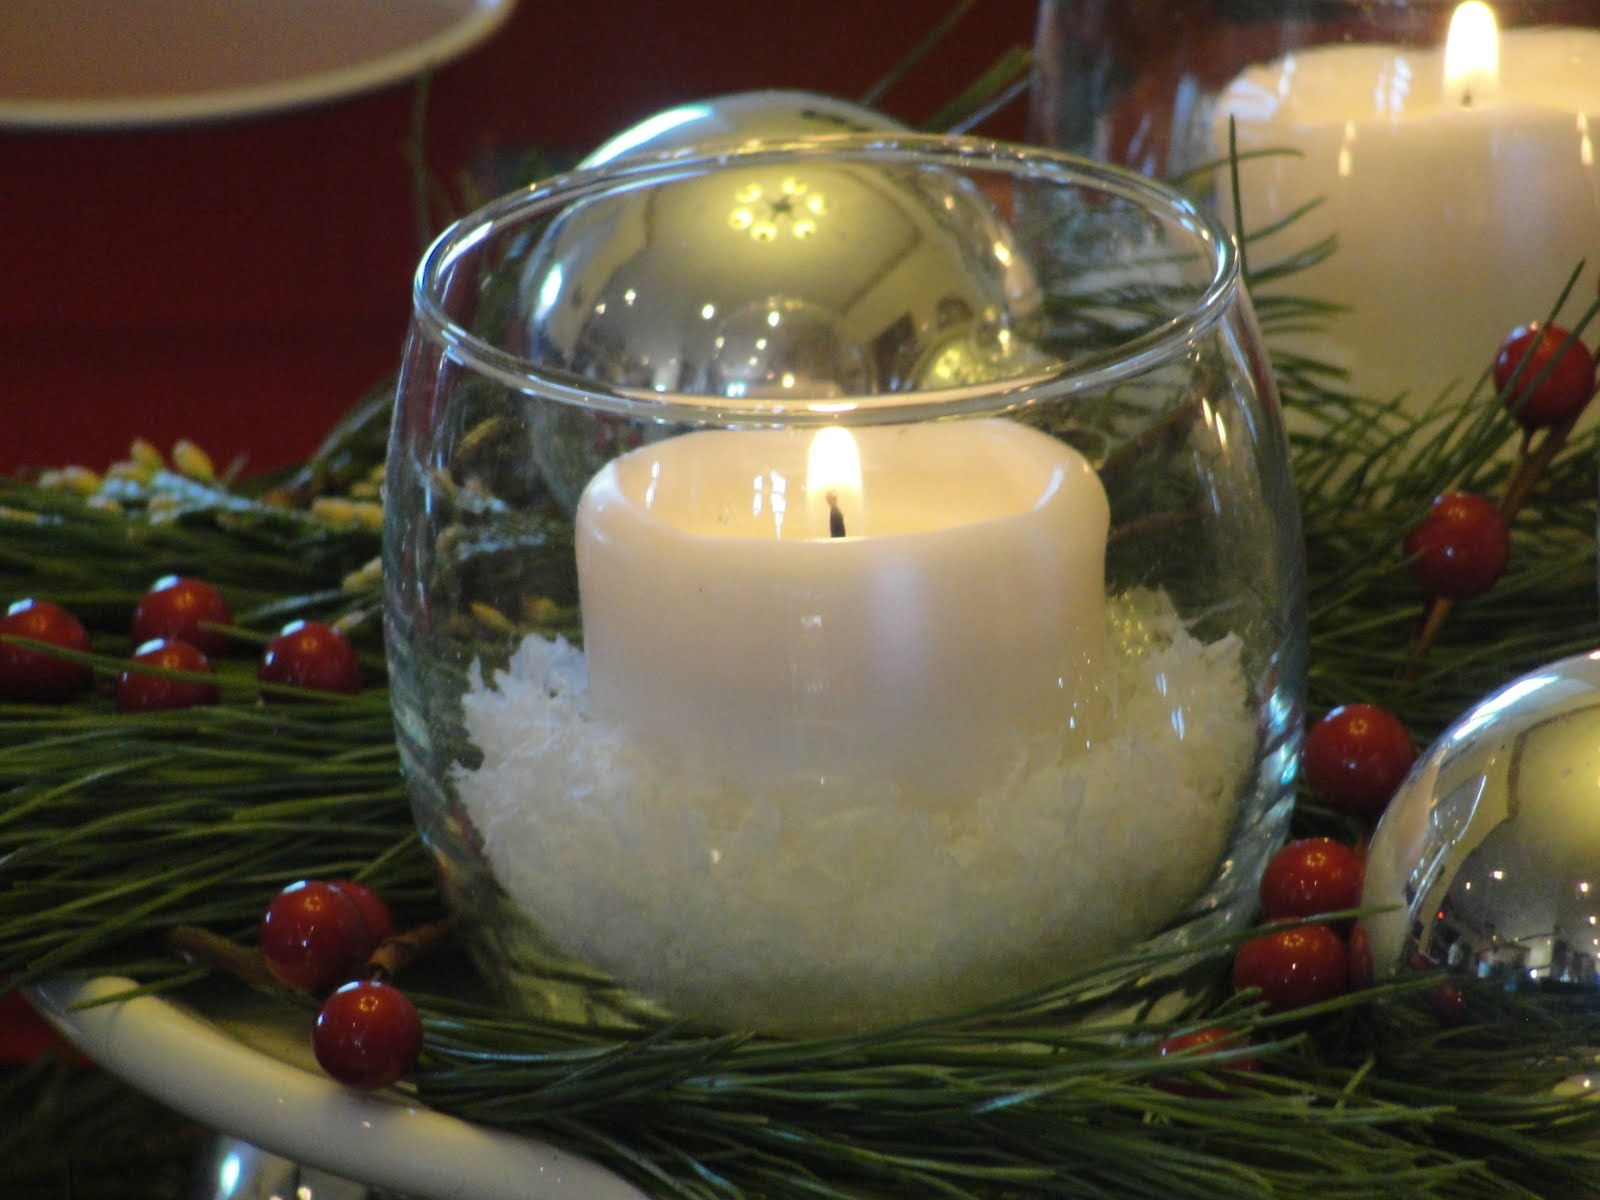 Silver and white christmas table decorations - A Christmas Table And Centerpiece